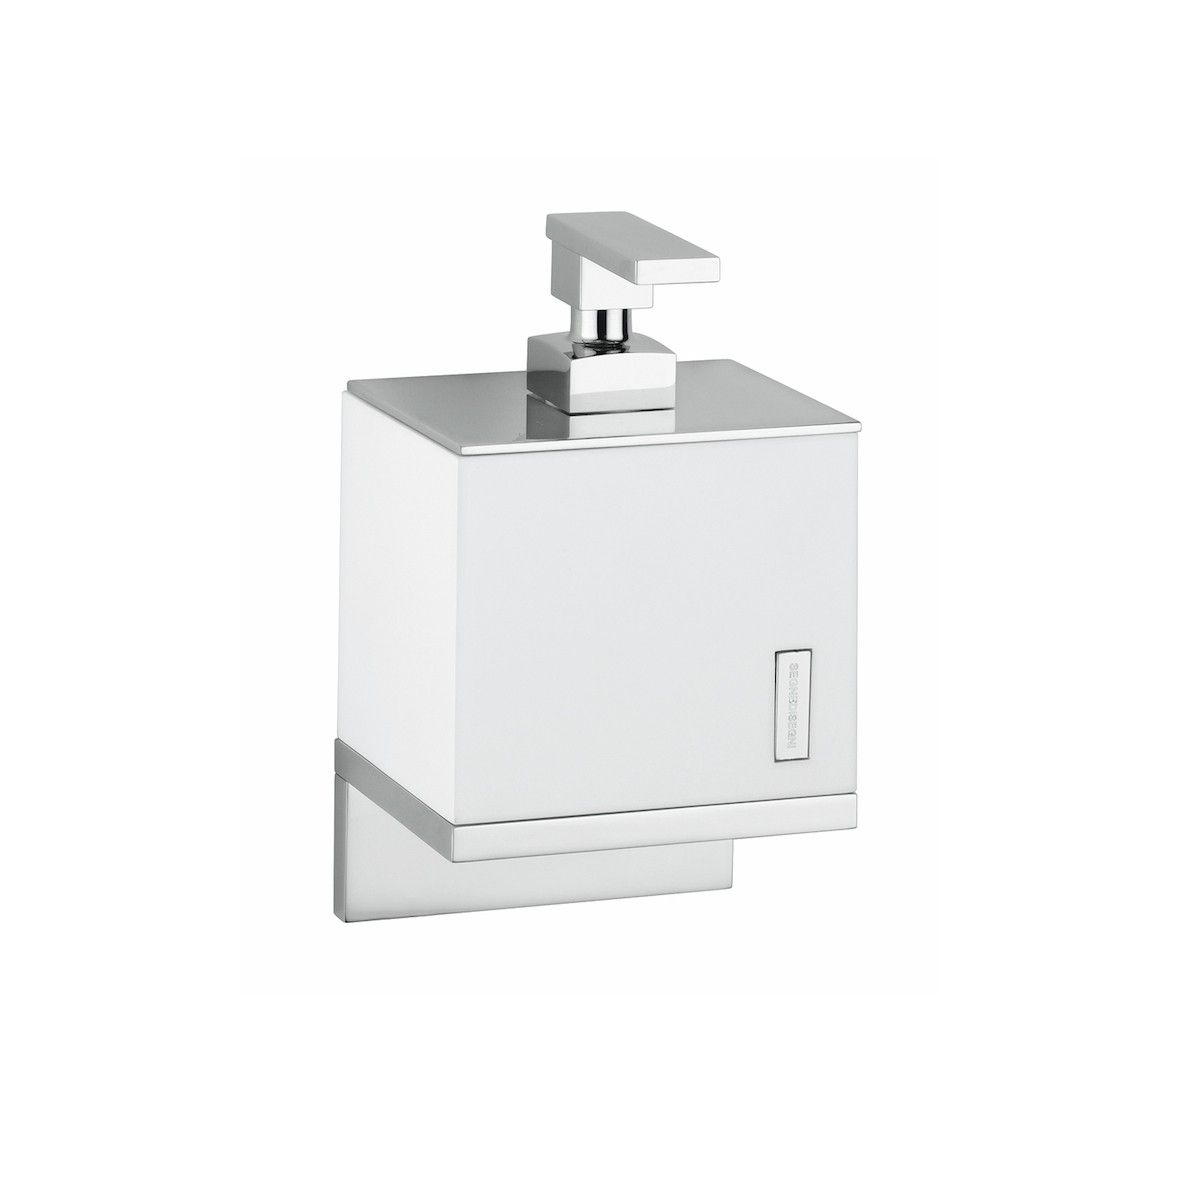 Wall Mounted Kitchen Soap Dispenser Ws Bath Collections Demetra 1933 Wall Mounted Soap